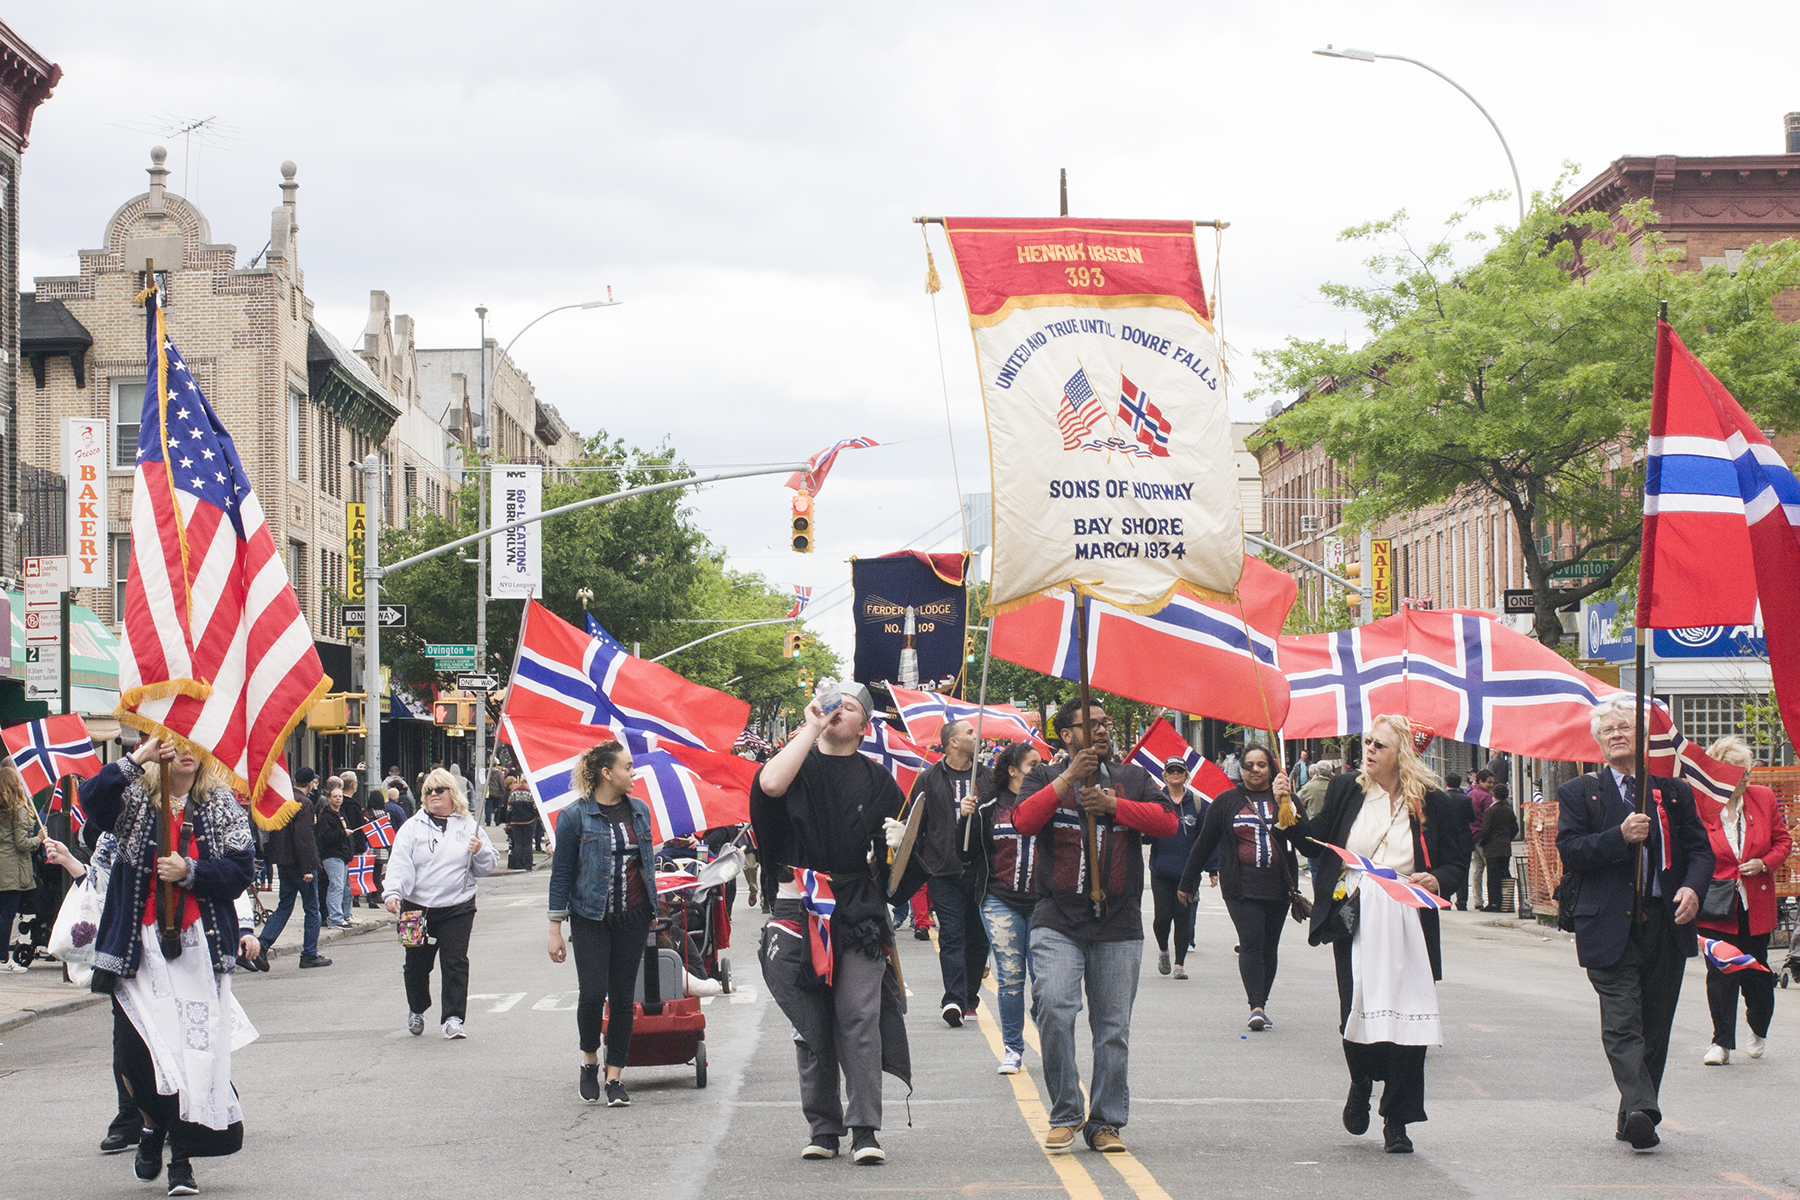 The Sons of Norway Lodge from Islip, NY marches in the parade. Membership lodges for Norwegian Americans from all over the northeast march in the parade, some with distinct floats or banners.